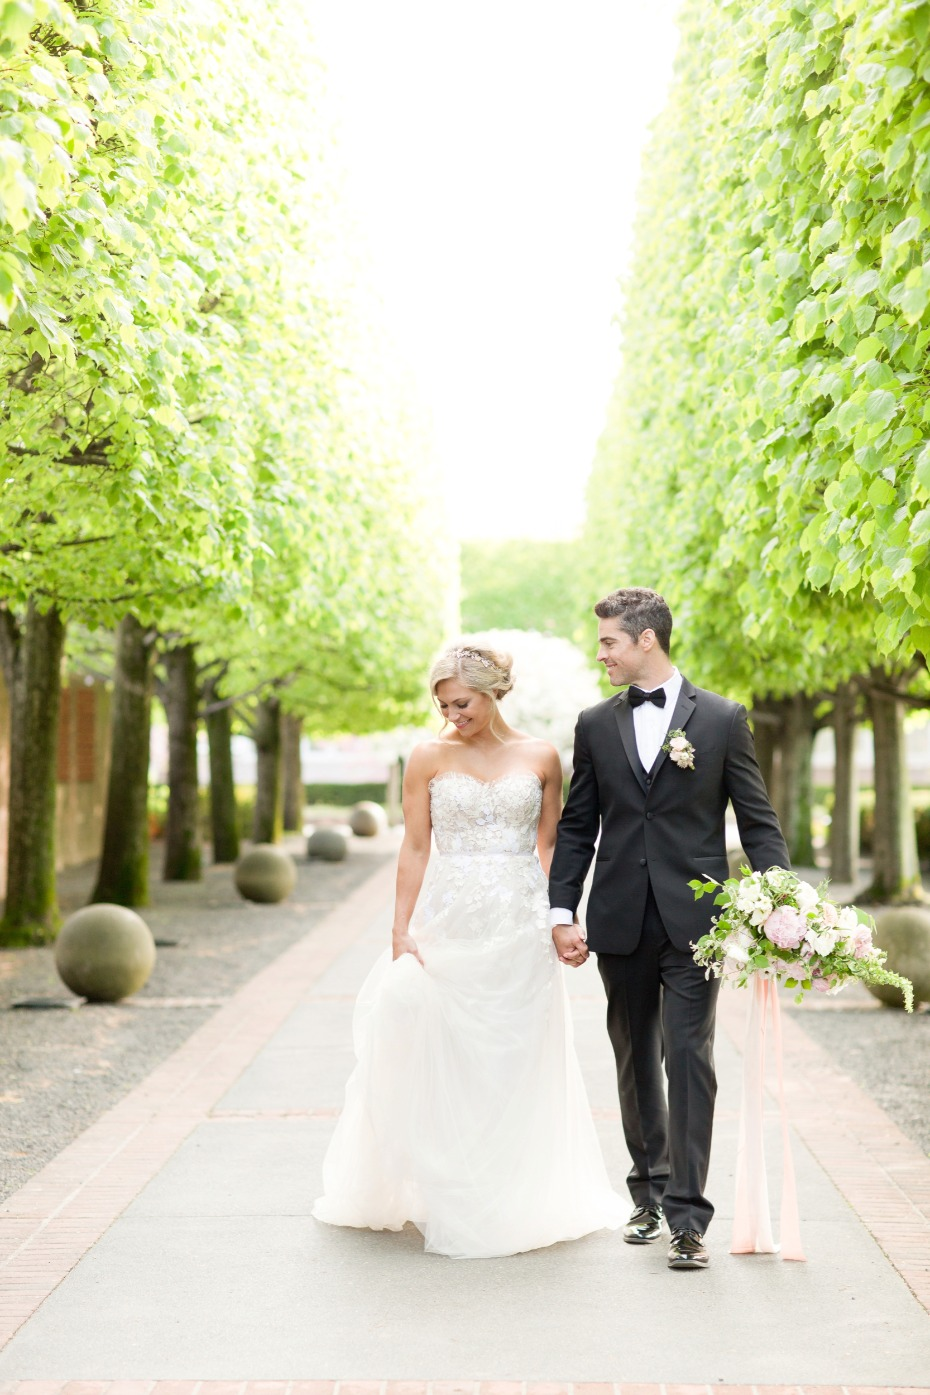 Luxurious garden wedding ideas